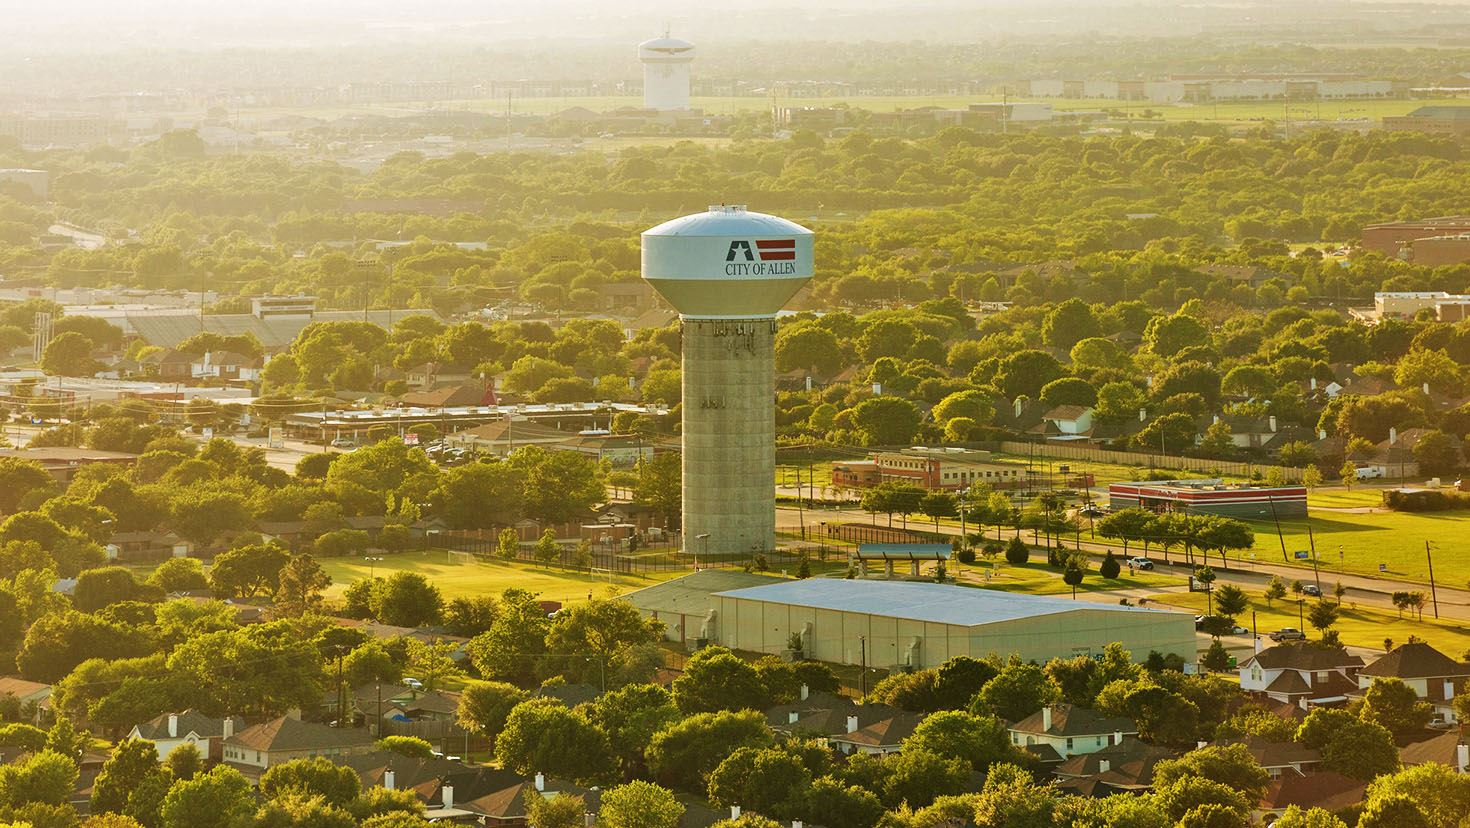 Aerial photo of Allen water tower with sun shining above